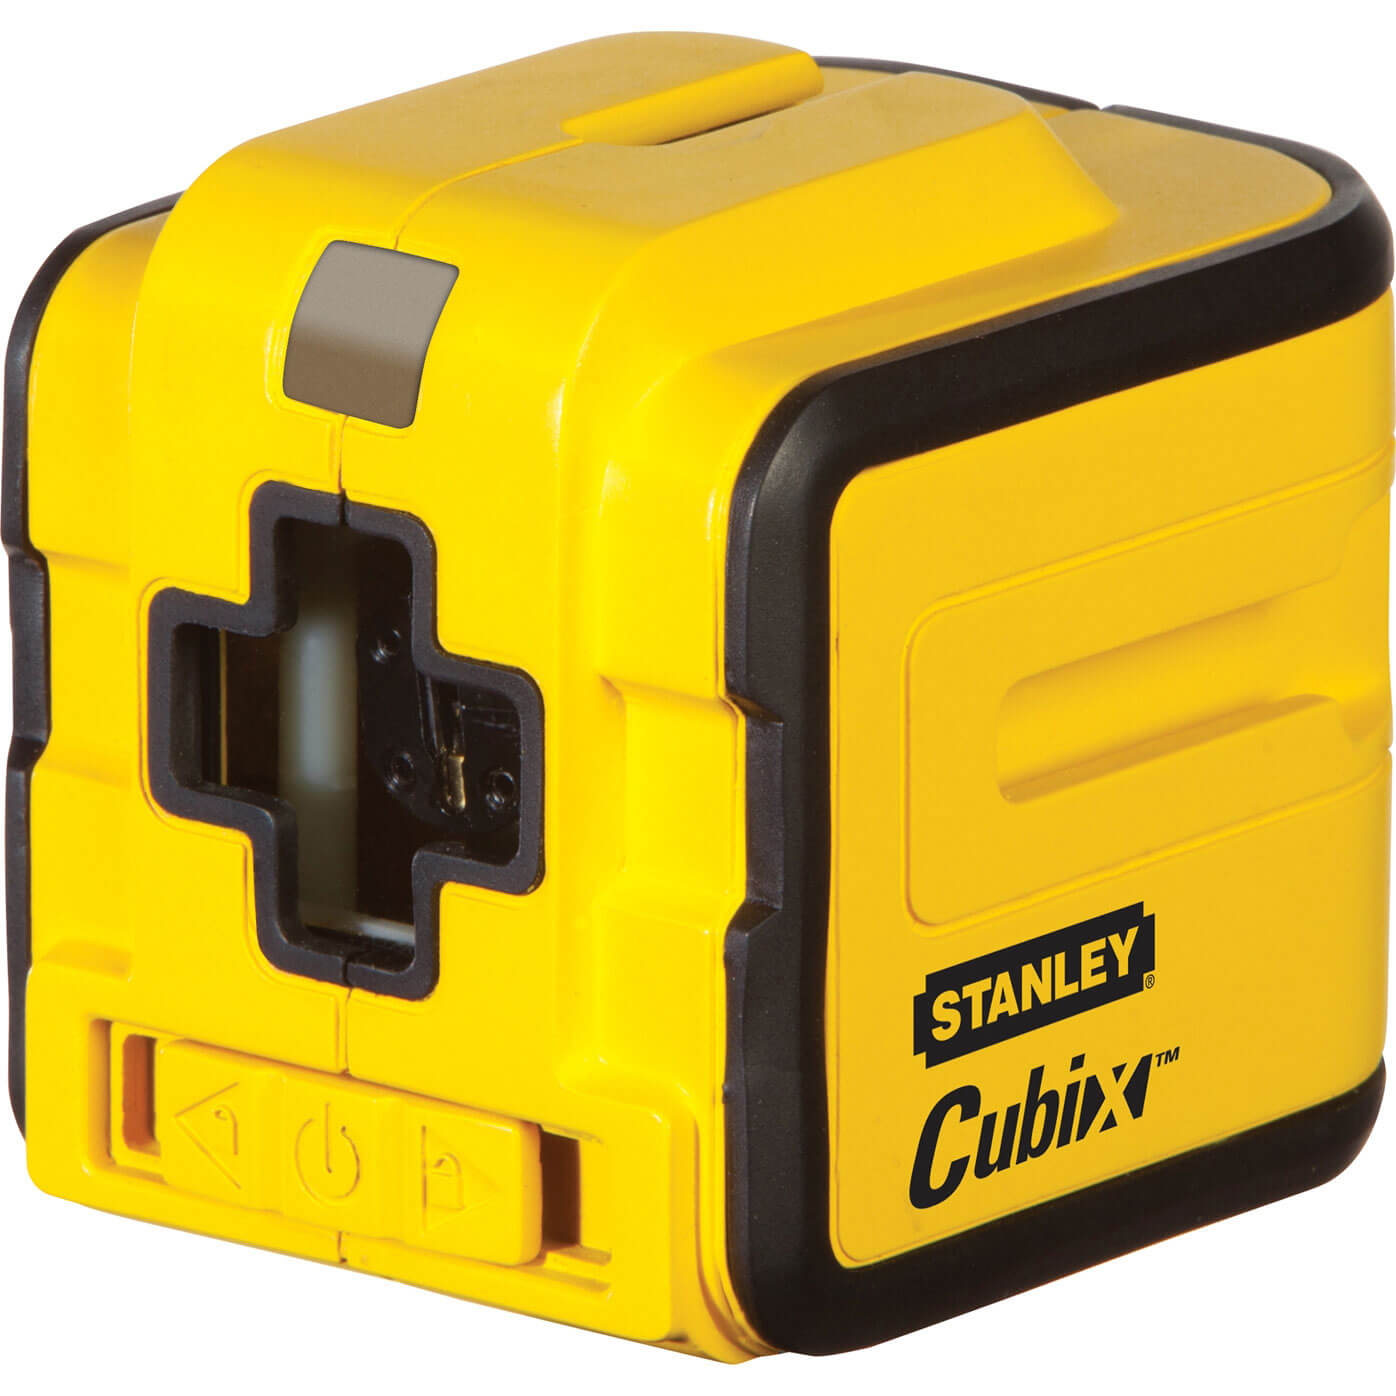 Stanley Intelli Cubix Self Levelling Cross Line Laser Level